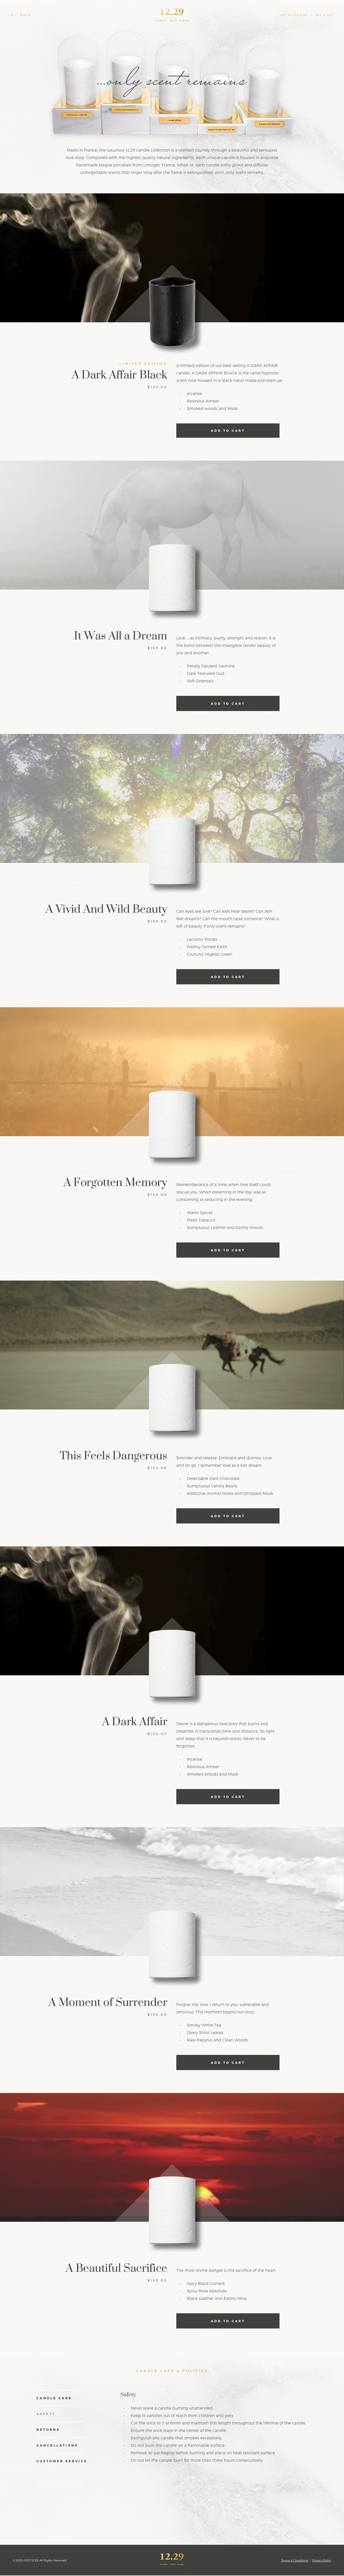 1229_desktop_candlecollection template.png